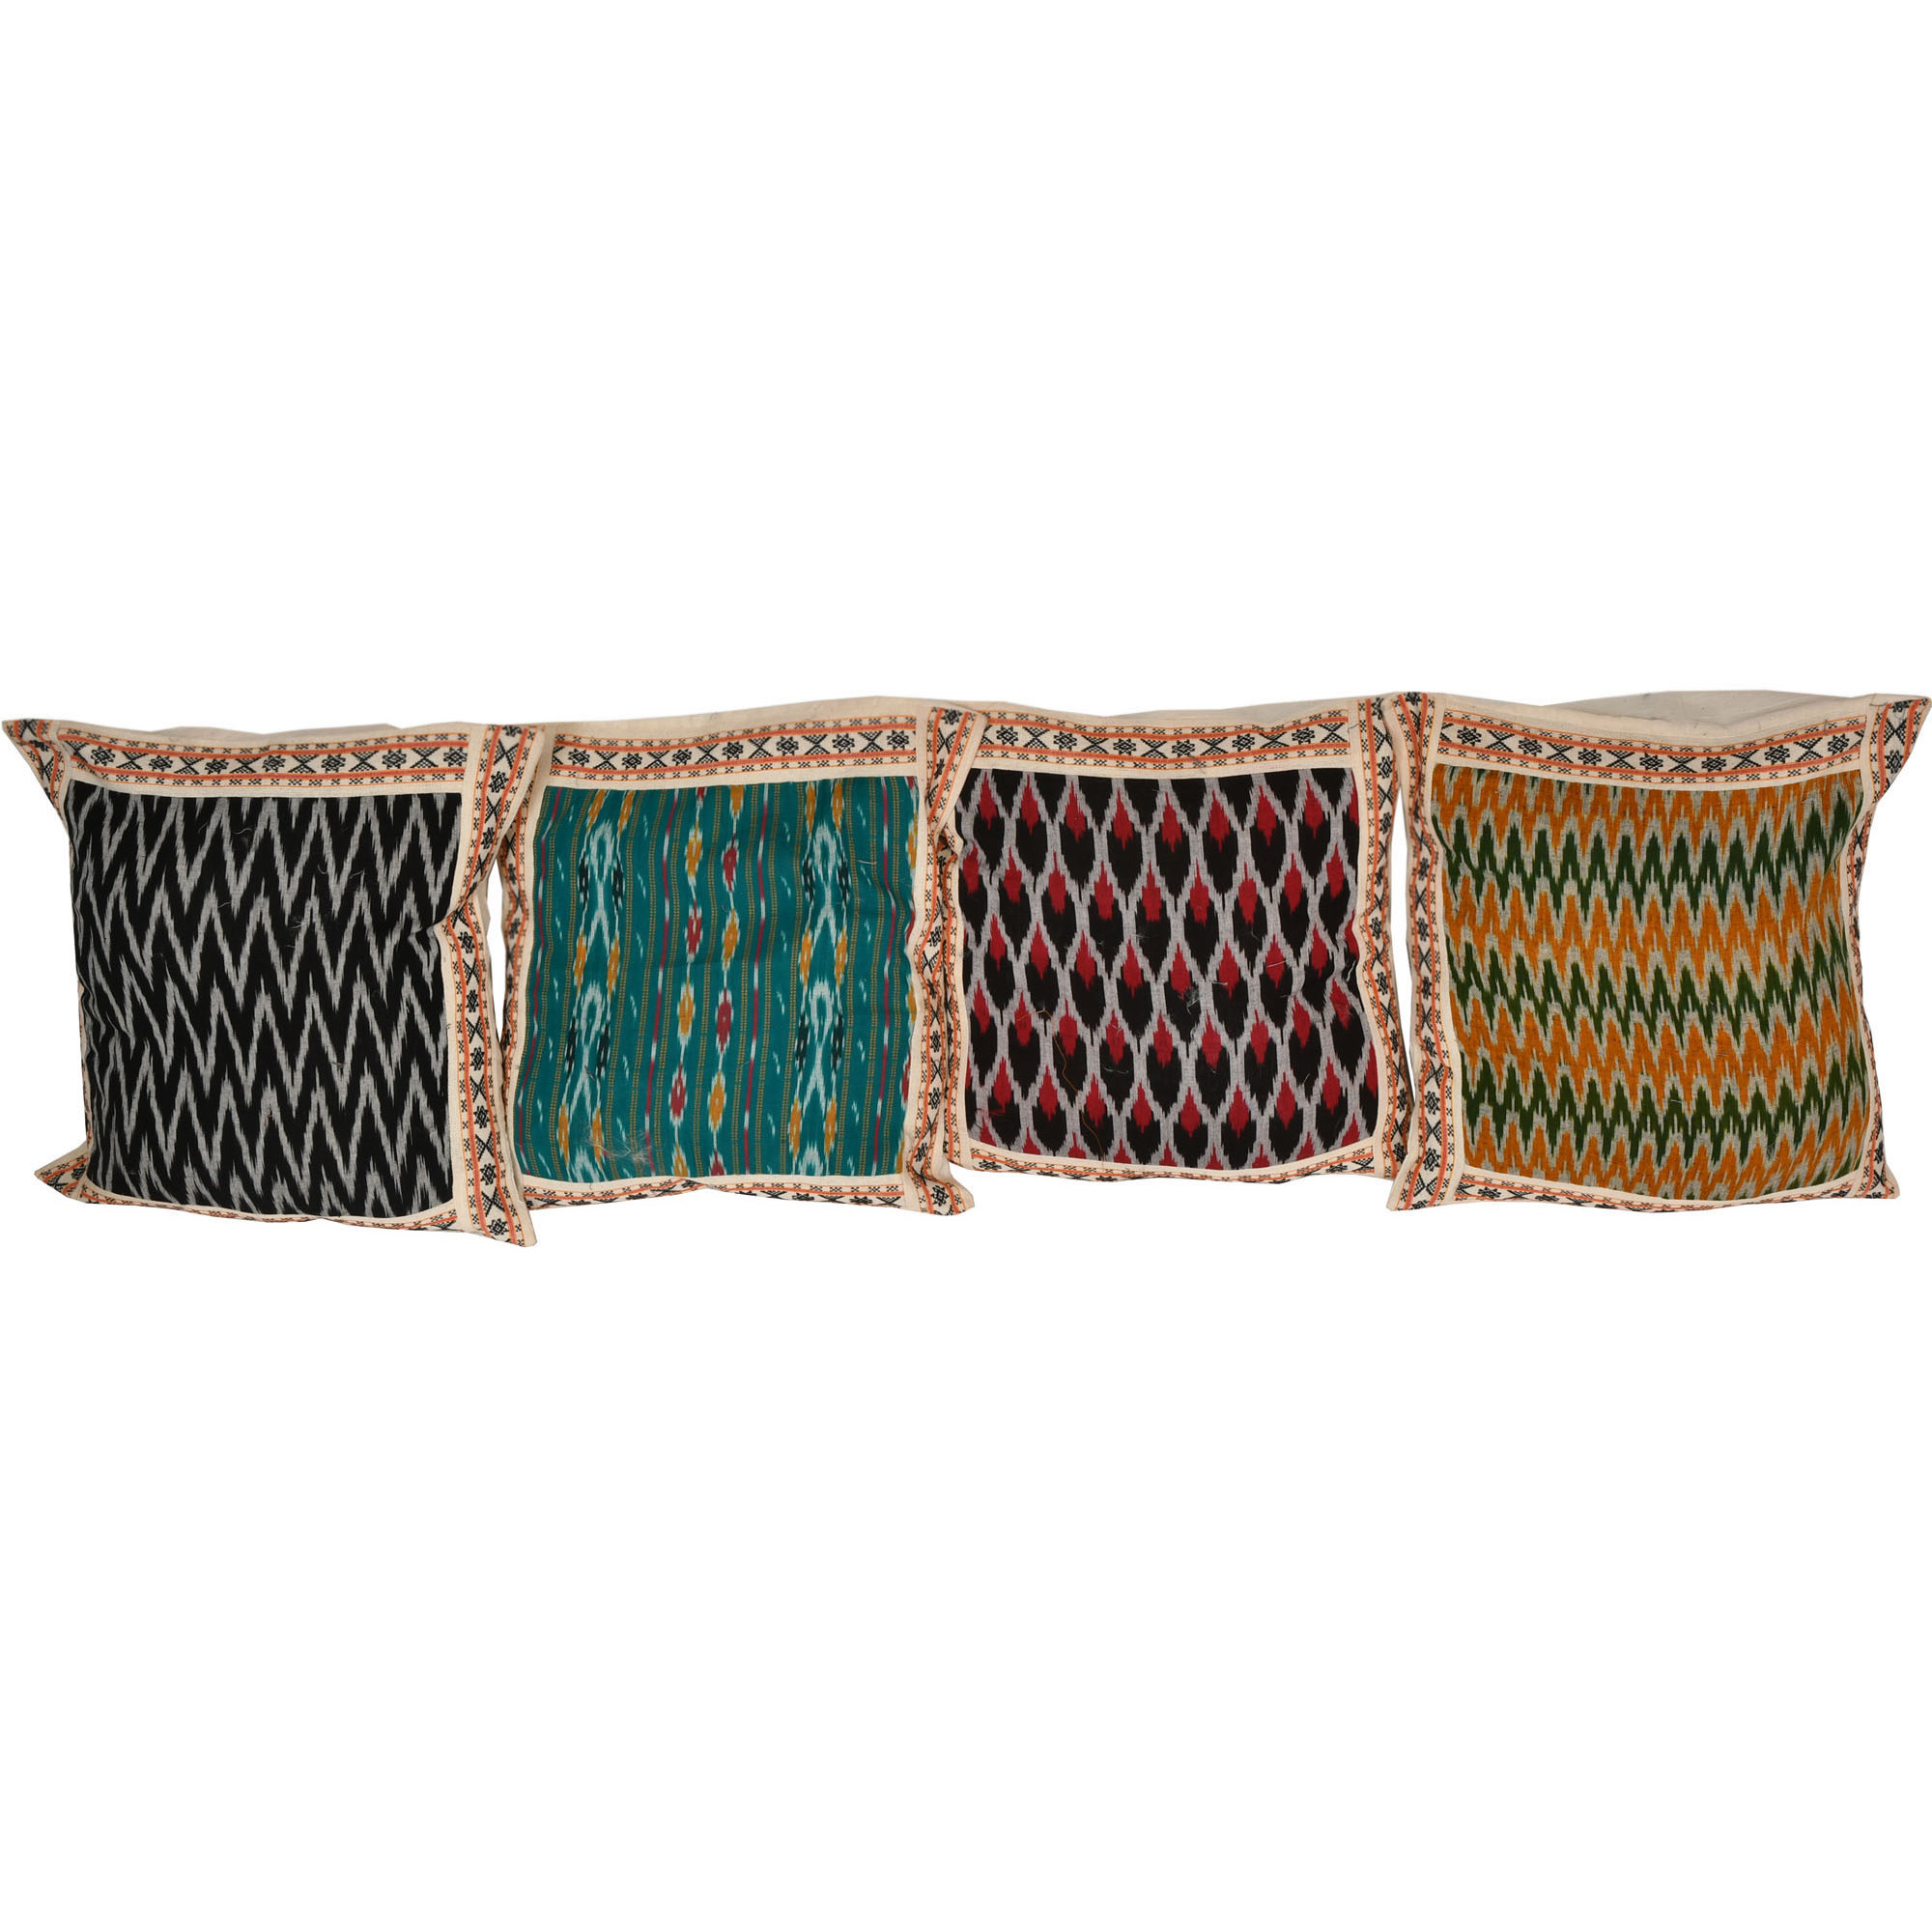 Lot of Four Cushion Covers from Hyderabad with Ikat Weave